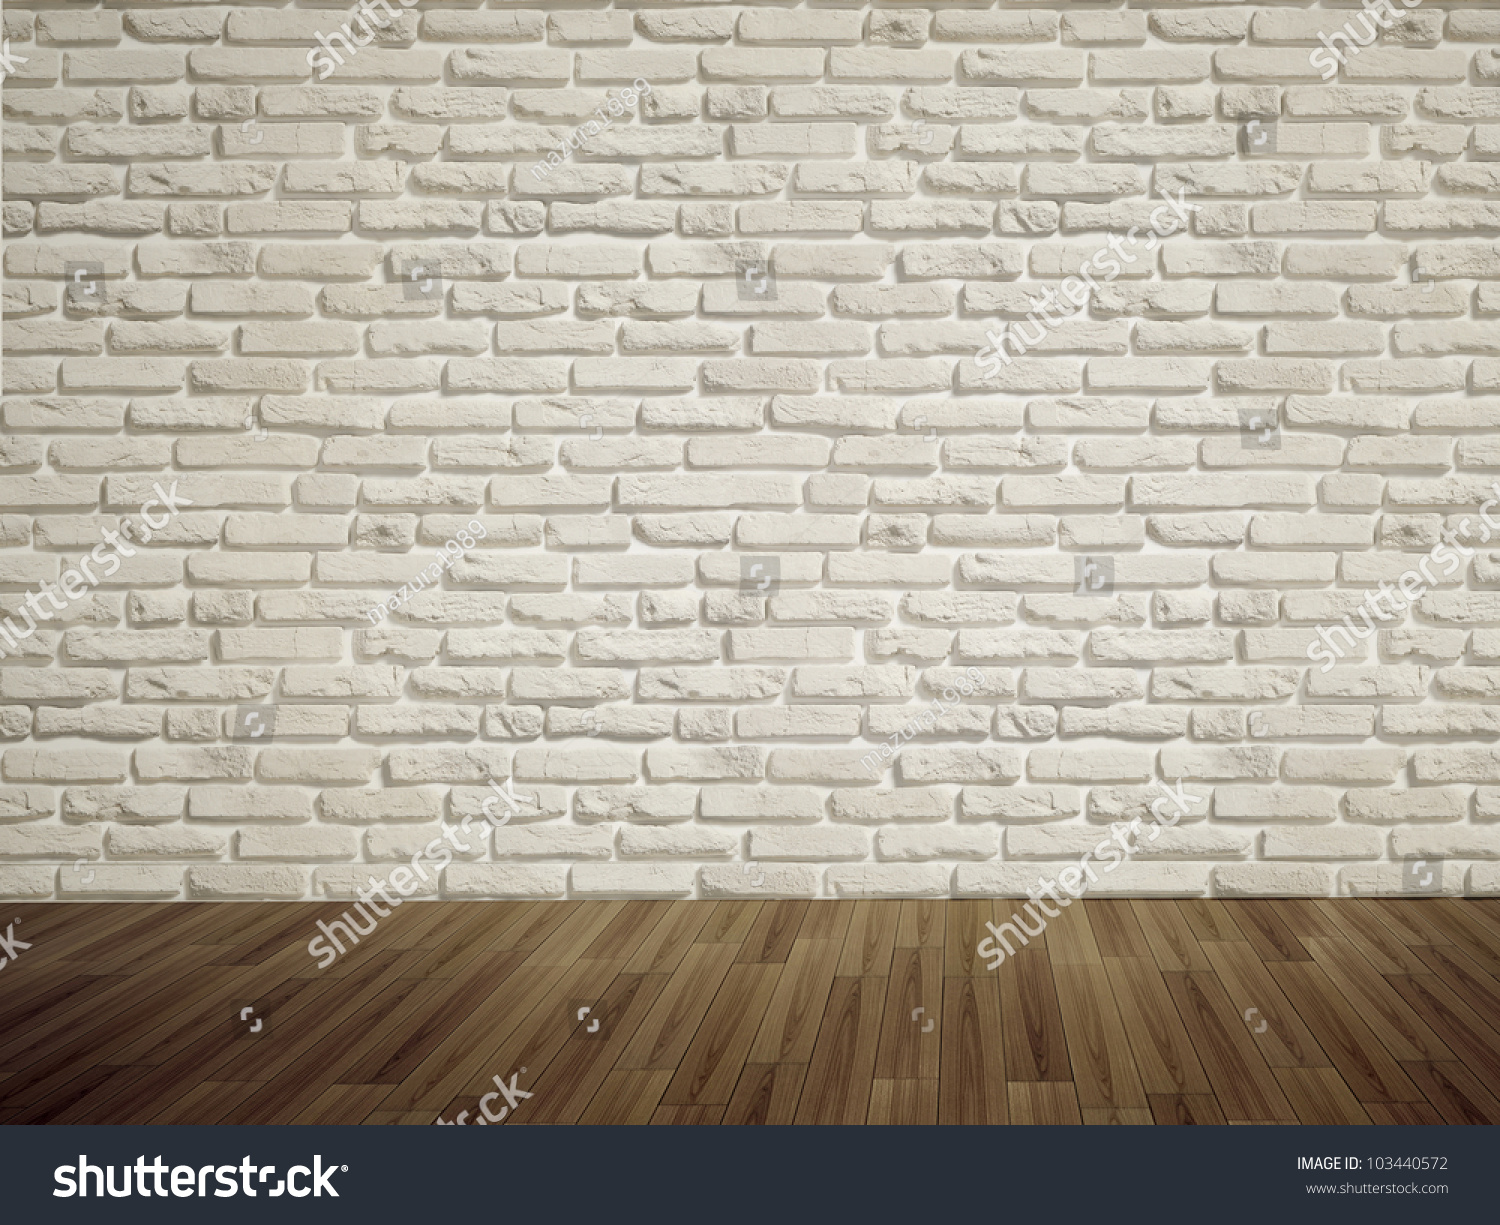 shutterstock of image dimensional brick and photo stock interior wall with floor illustration three threedimensional concrete